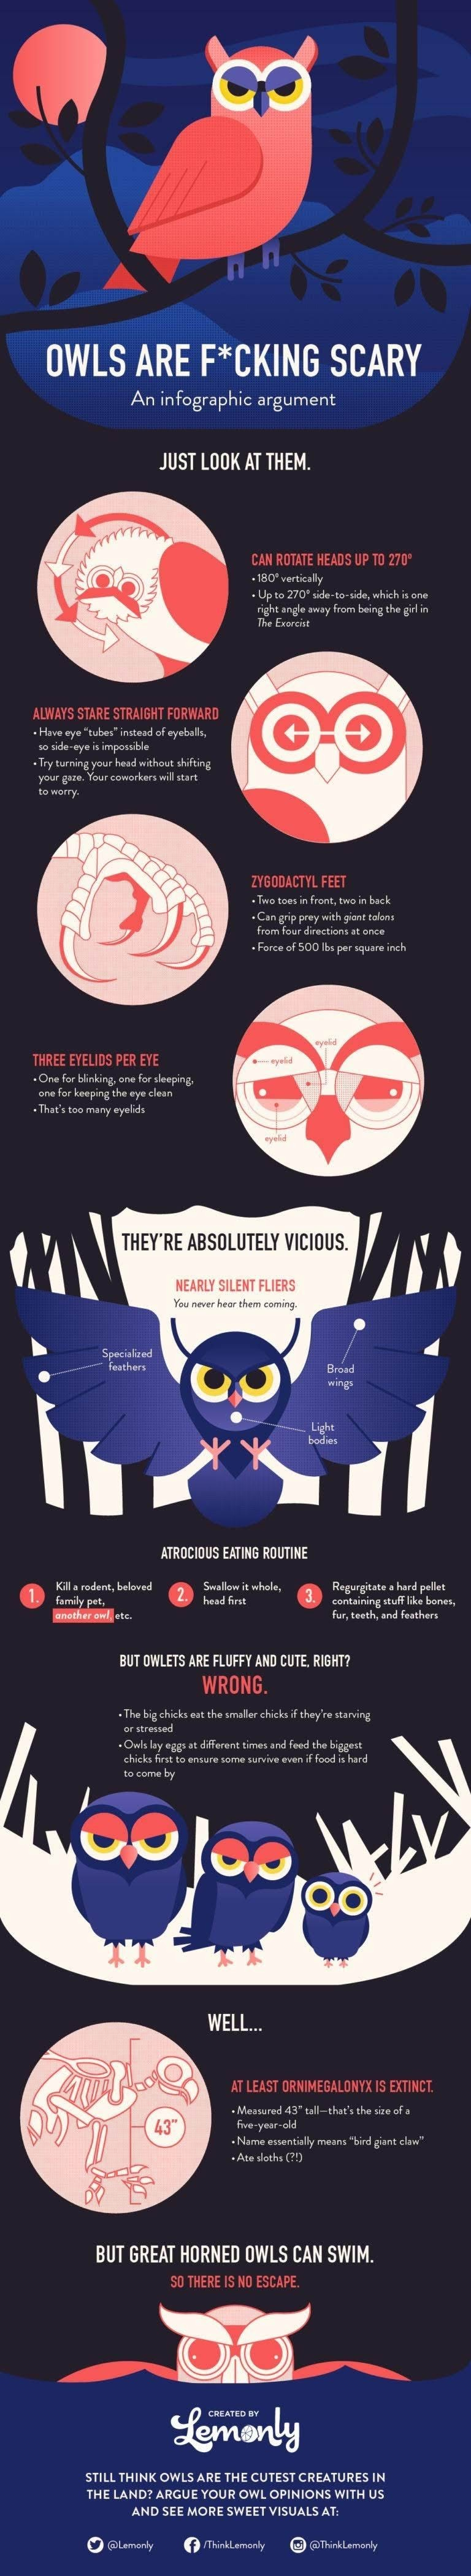 OWLS are a frightening argument #infographic